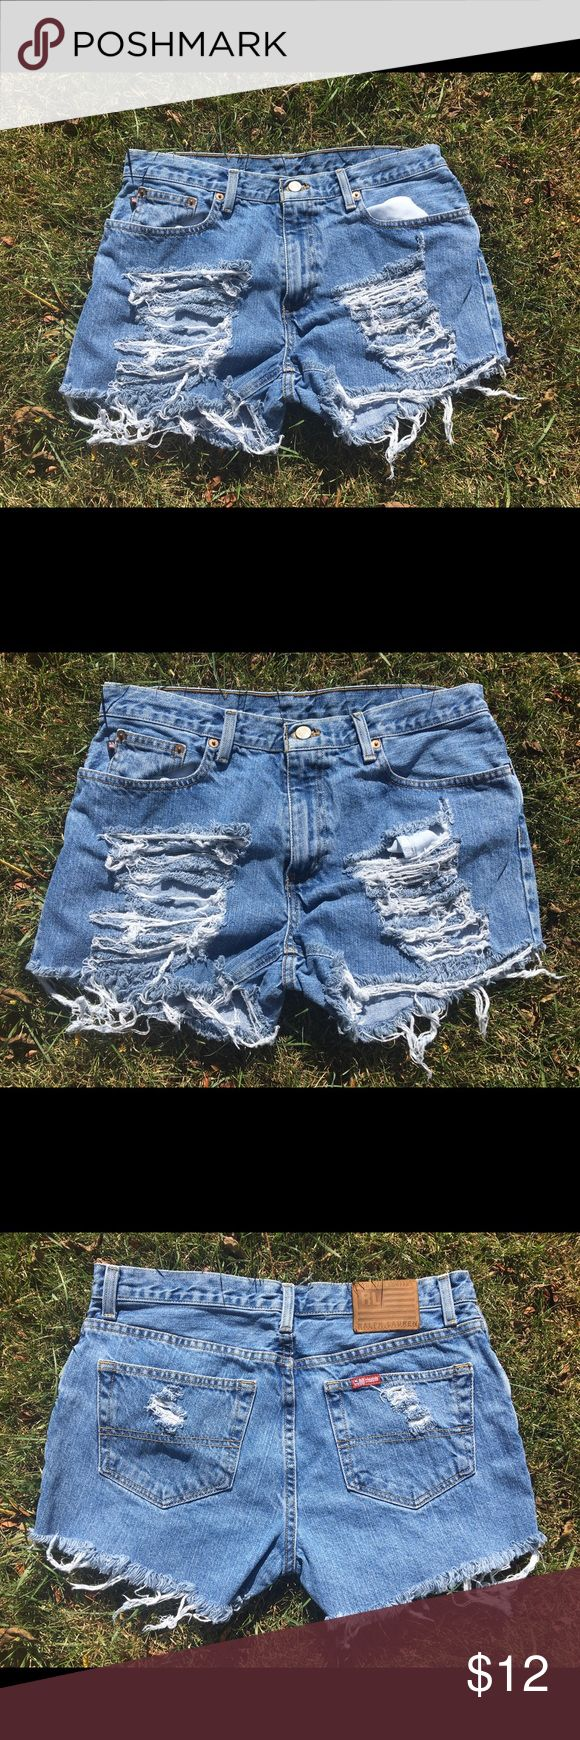 Ralph Lauren Polo women Shorts size 10 Ralph Lauren size 10 women ripped shorts!!! Keep up with the style and grab these jeans to go to the beach, ocean, pool, or out with the girlfriends!! These are used, ripped and cut by me if you want more ripping just contact me, customers request is my priority!!! Polo by Ralph Lauren Jeans